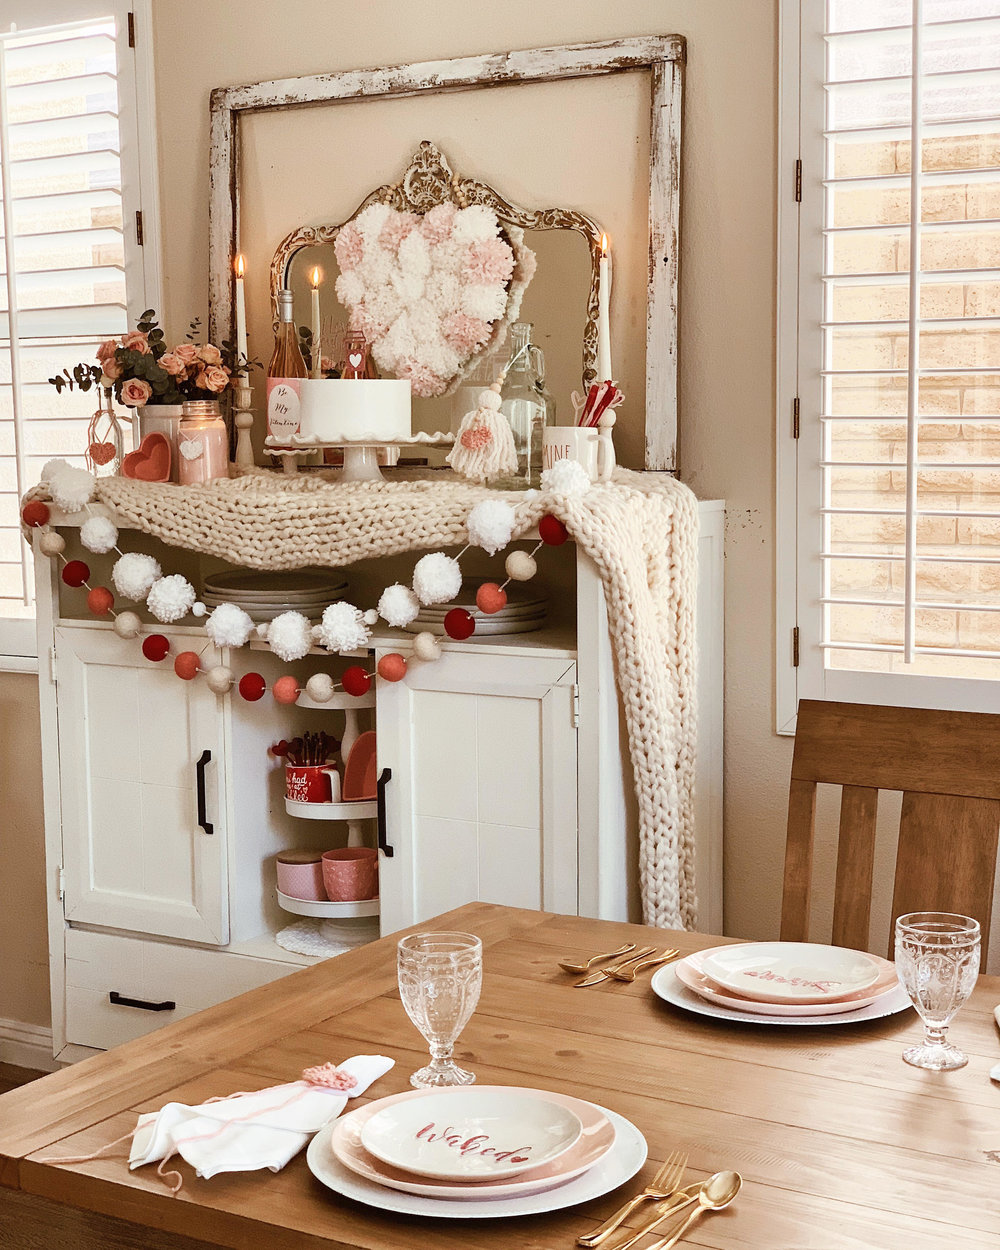 Valentine Home Decor Ideas-Cozy Valentine Decor-Farmhouse Valentine Decor-www.SugarPartiesLA.com.jpg